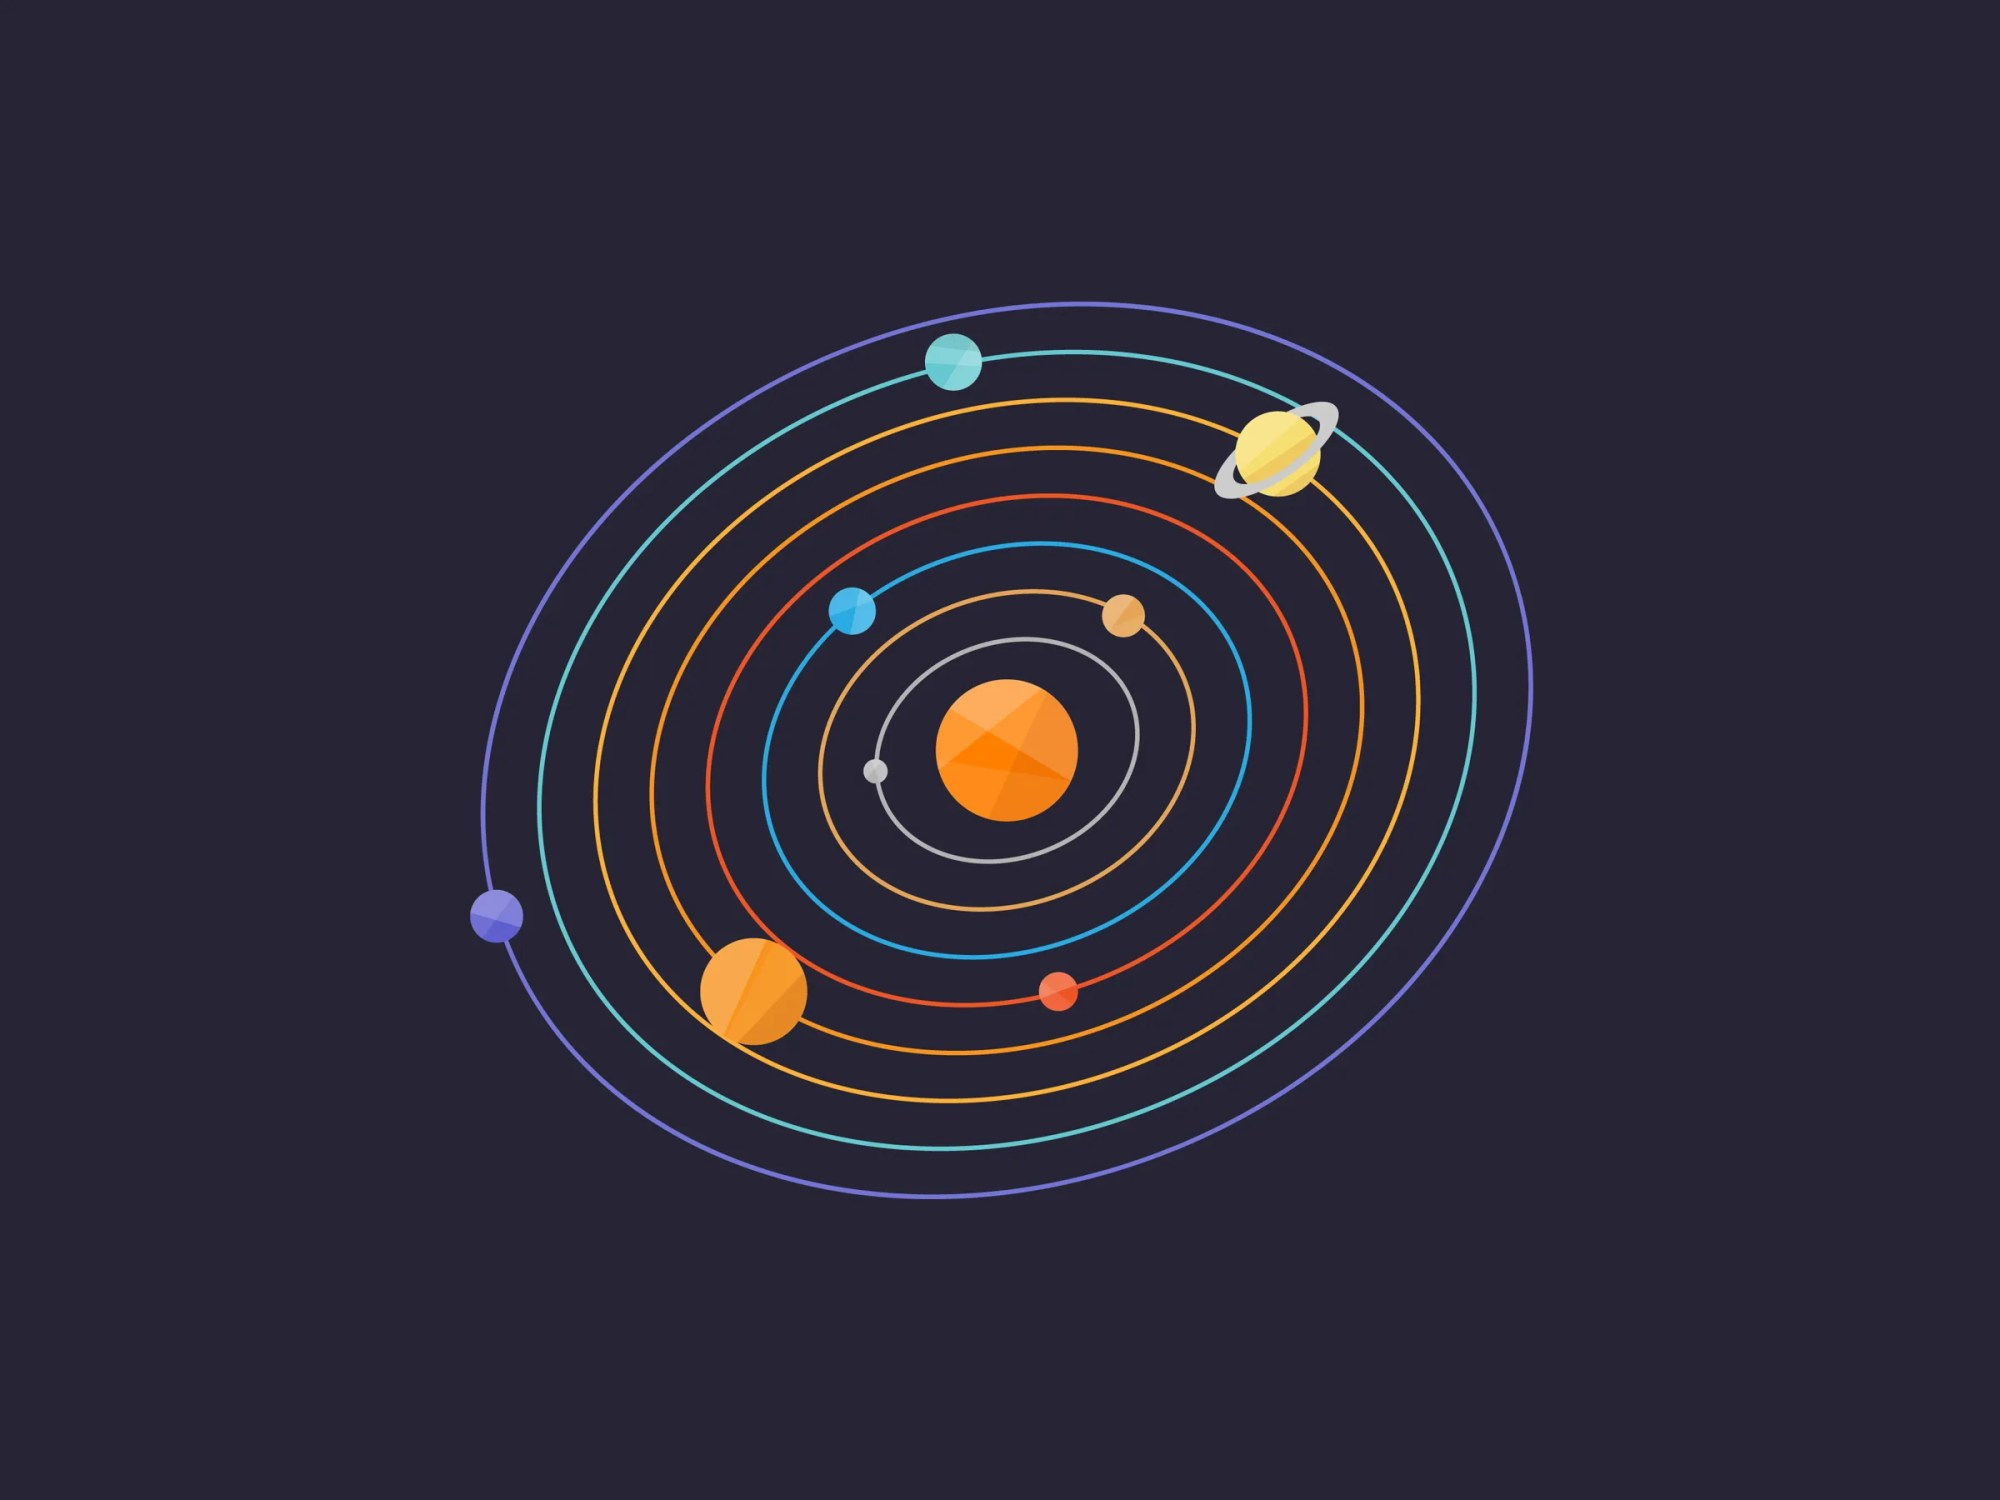 hight resolution of how to show that the earth orbits the sun